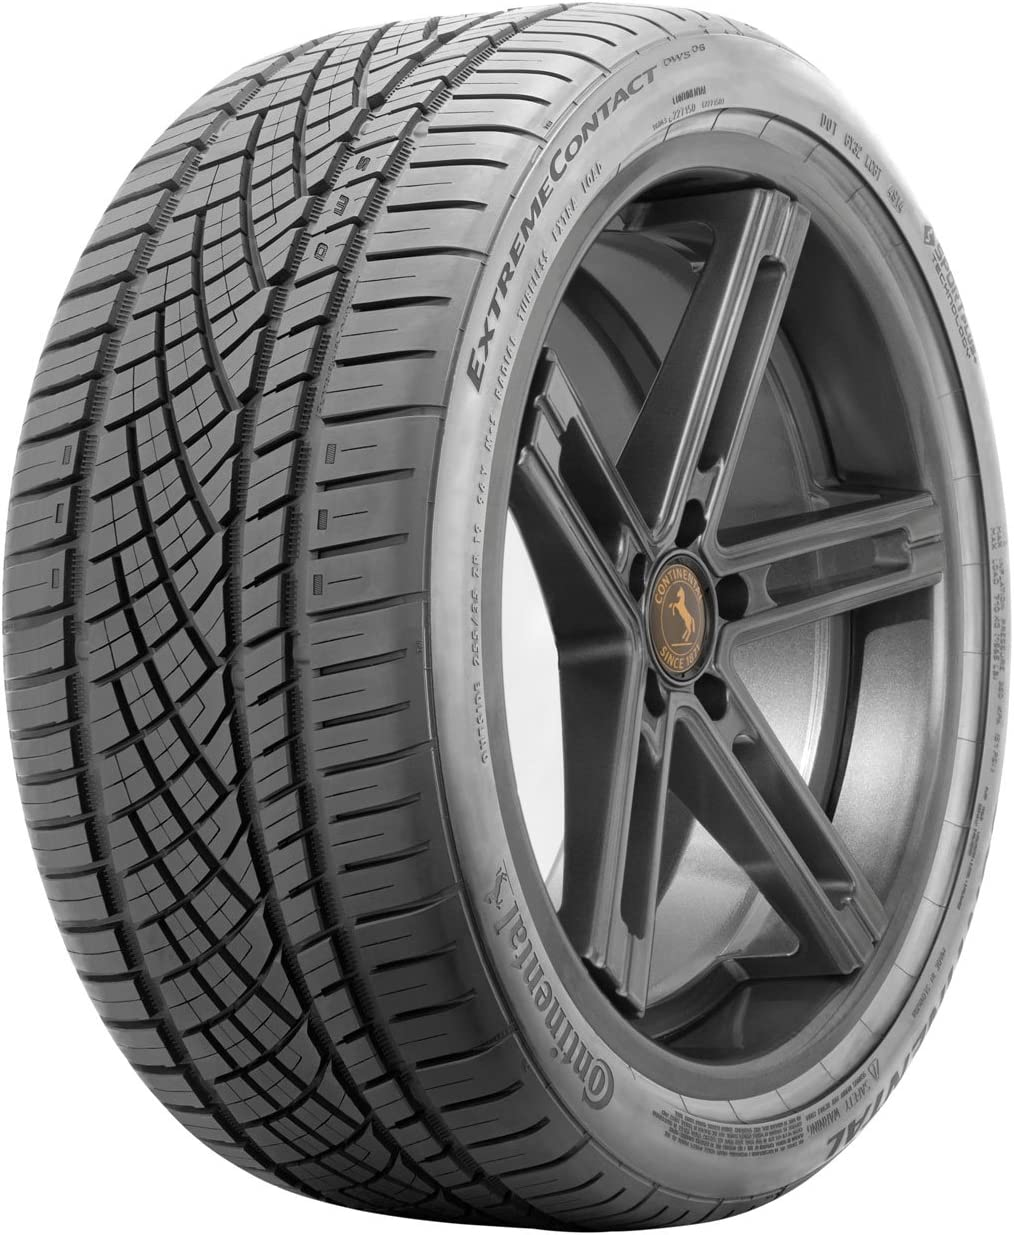 225//40ZR19 93Y Continental Extreme Contact DWS06 All-Season Radial Tire